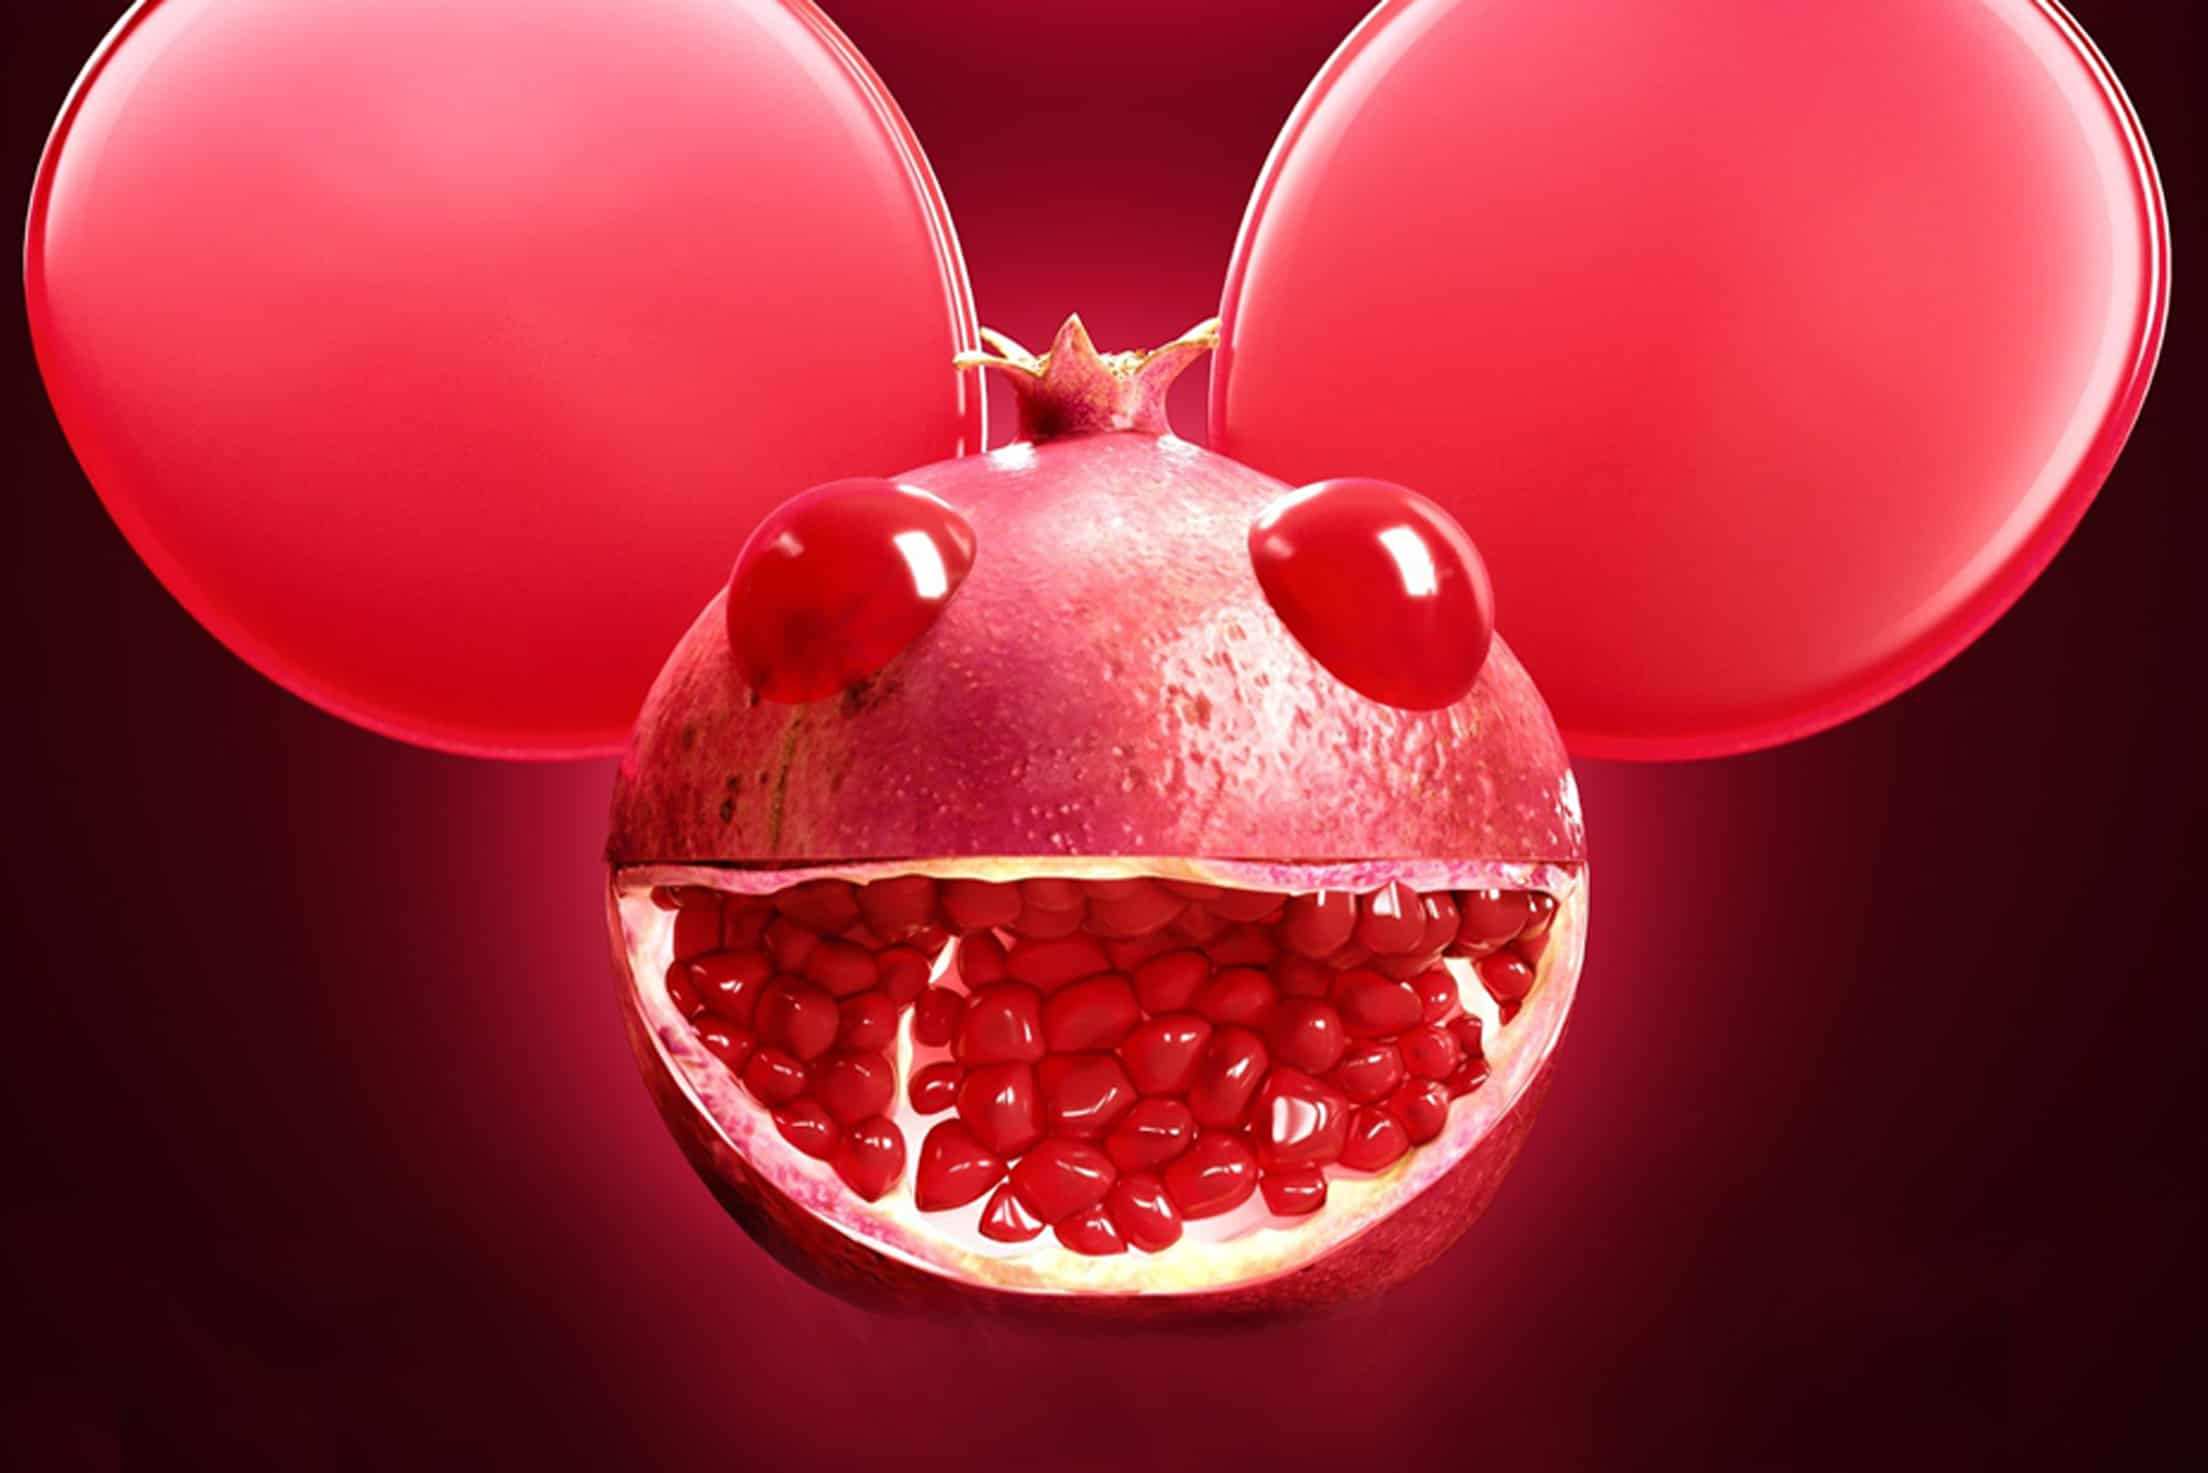 DEADMAU5 & THE NEPTUNES JOIN FORCES ON SUMMER ANTHEM 'POMEGRANATE'